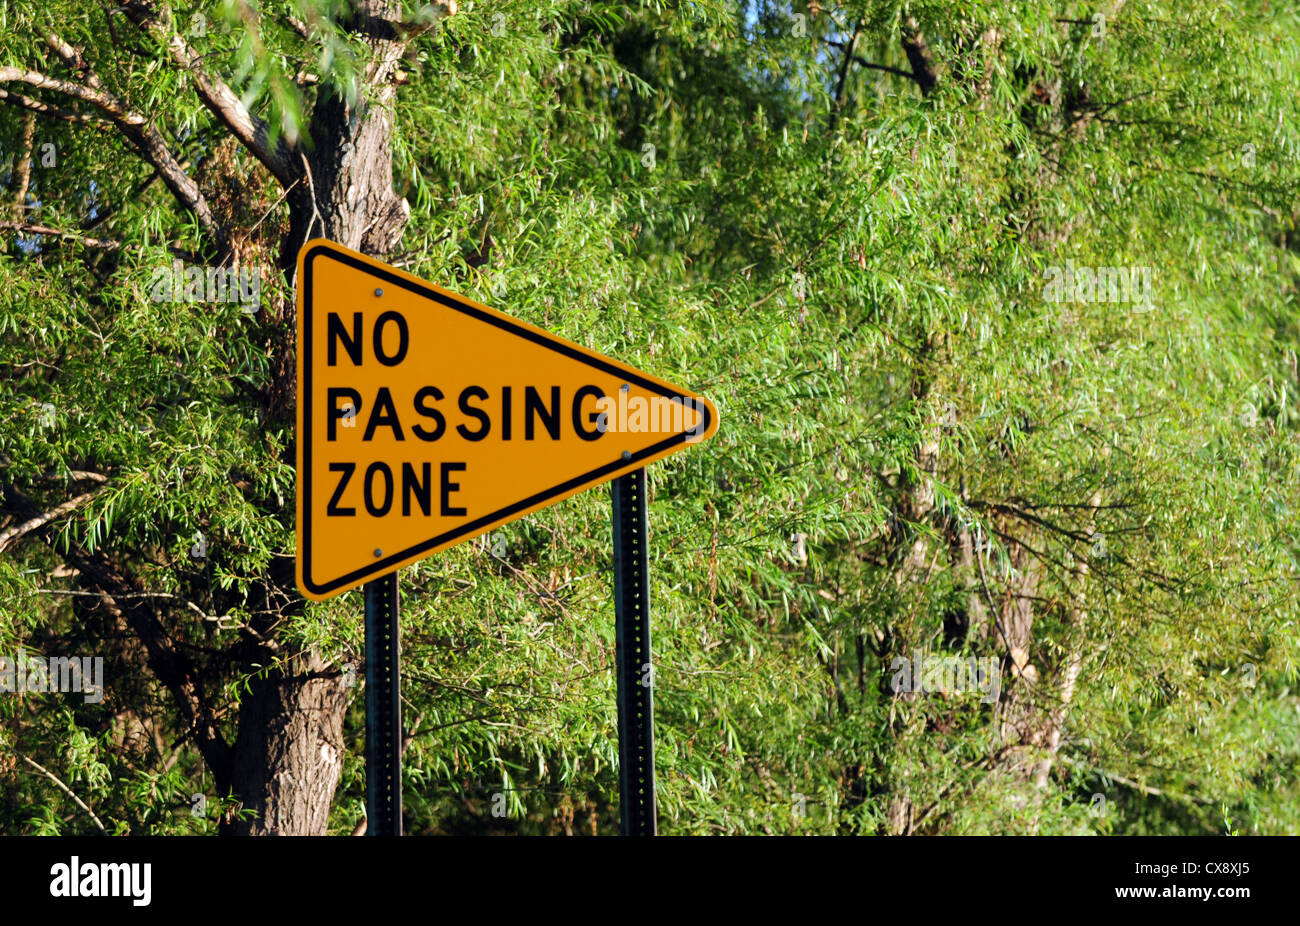 No passing zone traffic sign in nature - Stock Image